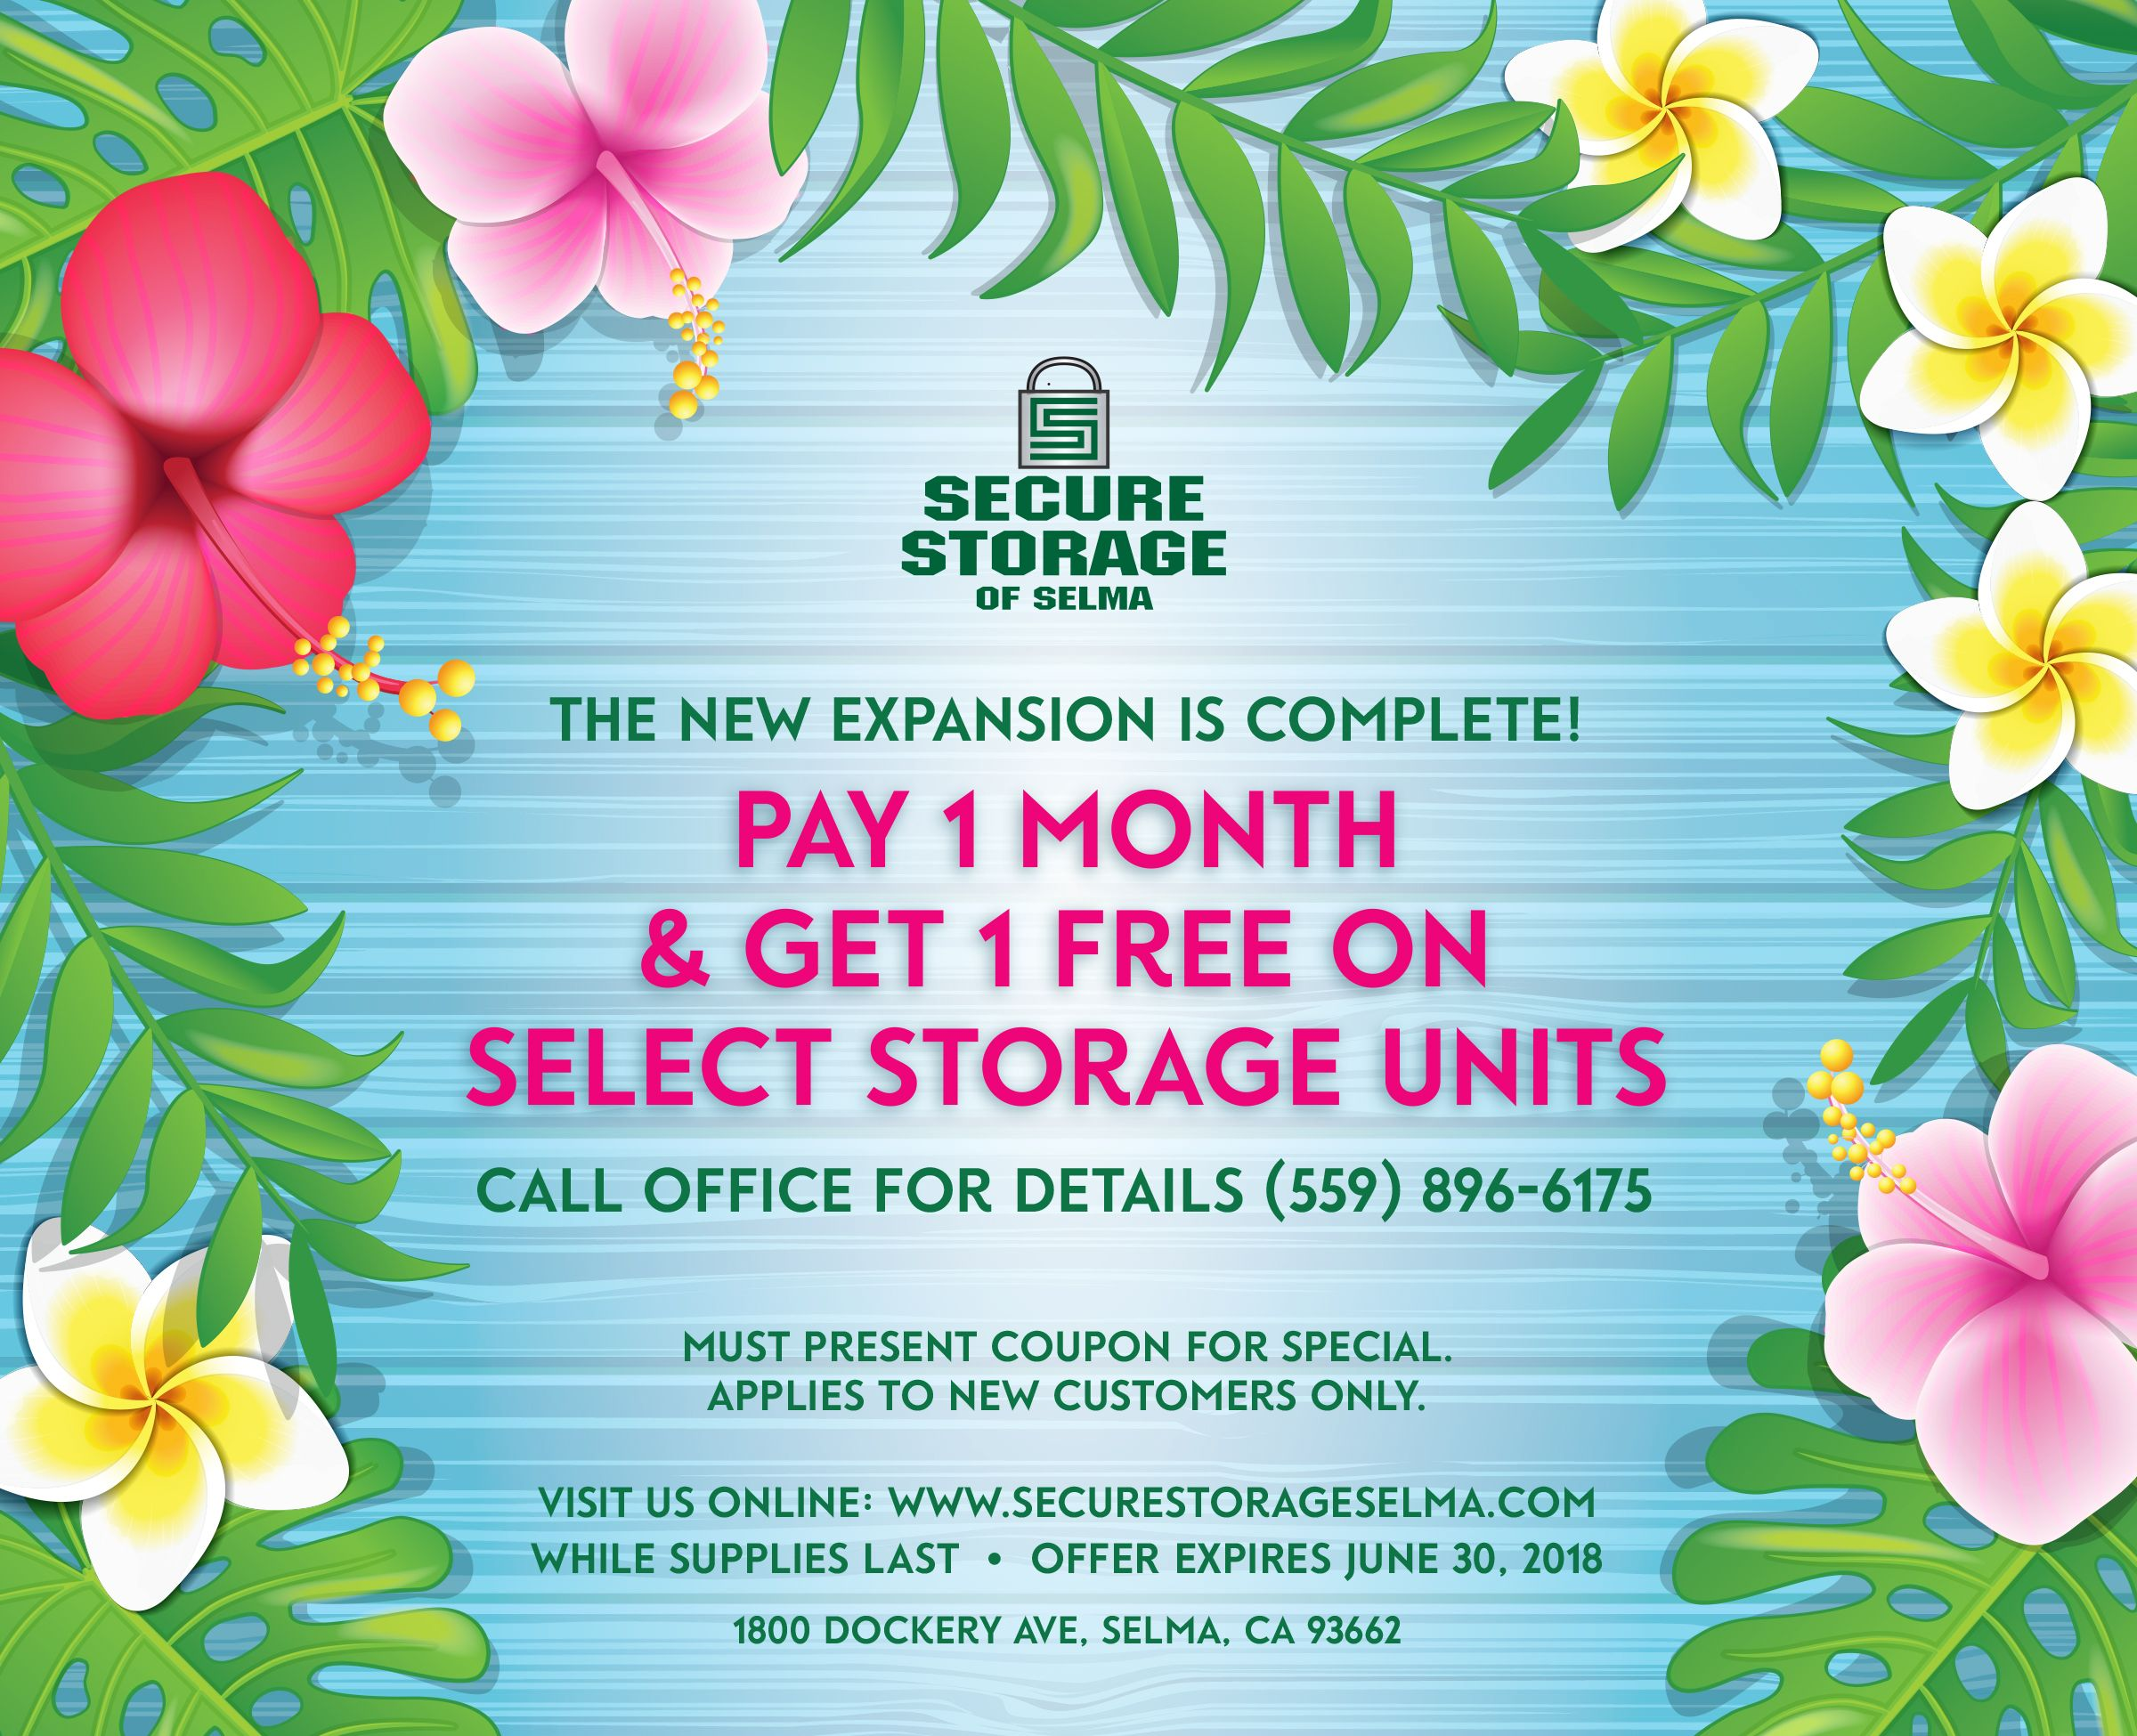 Pay 1 Month Get The 2nd Month Free For All New Move Ins In The Month August Calls Us At 559 896 6175 To Reserve Your Unit T Secure Storage The Unit Storage